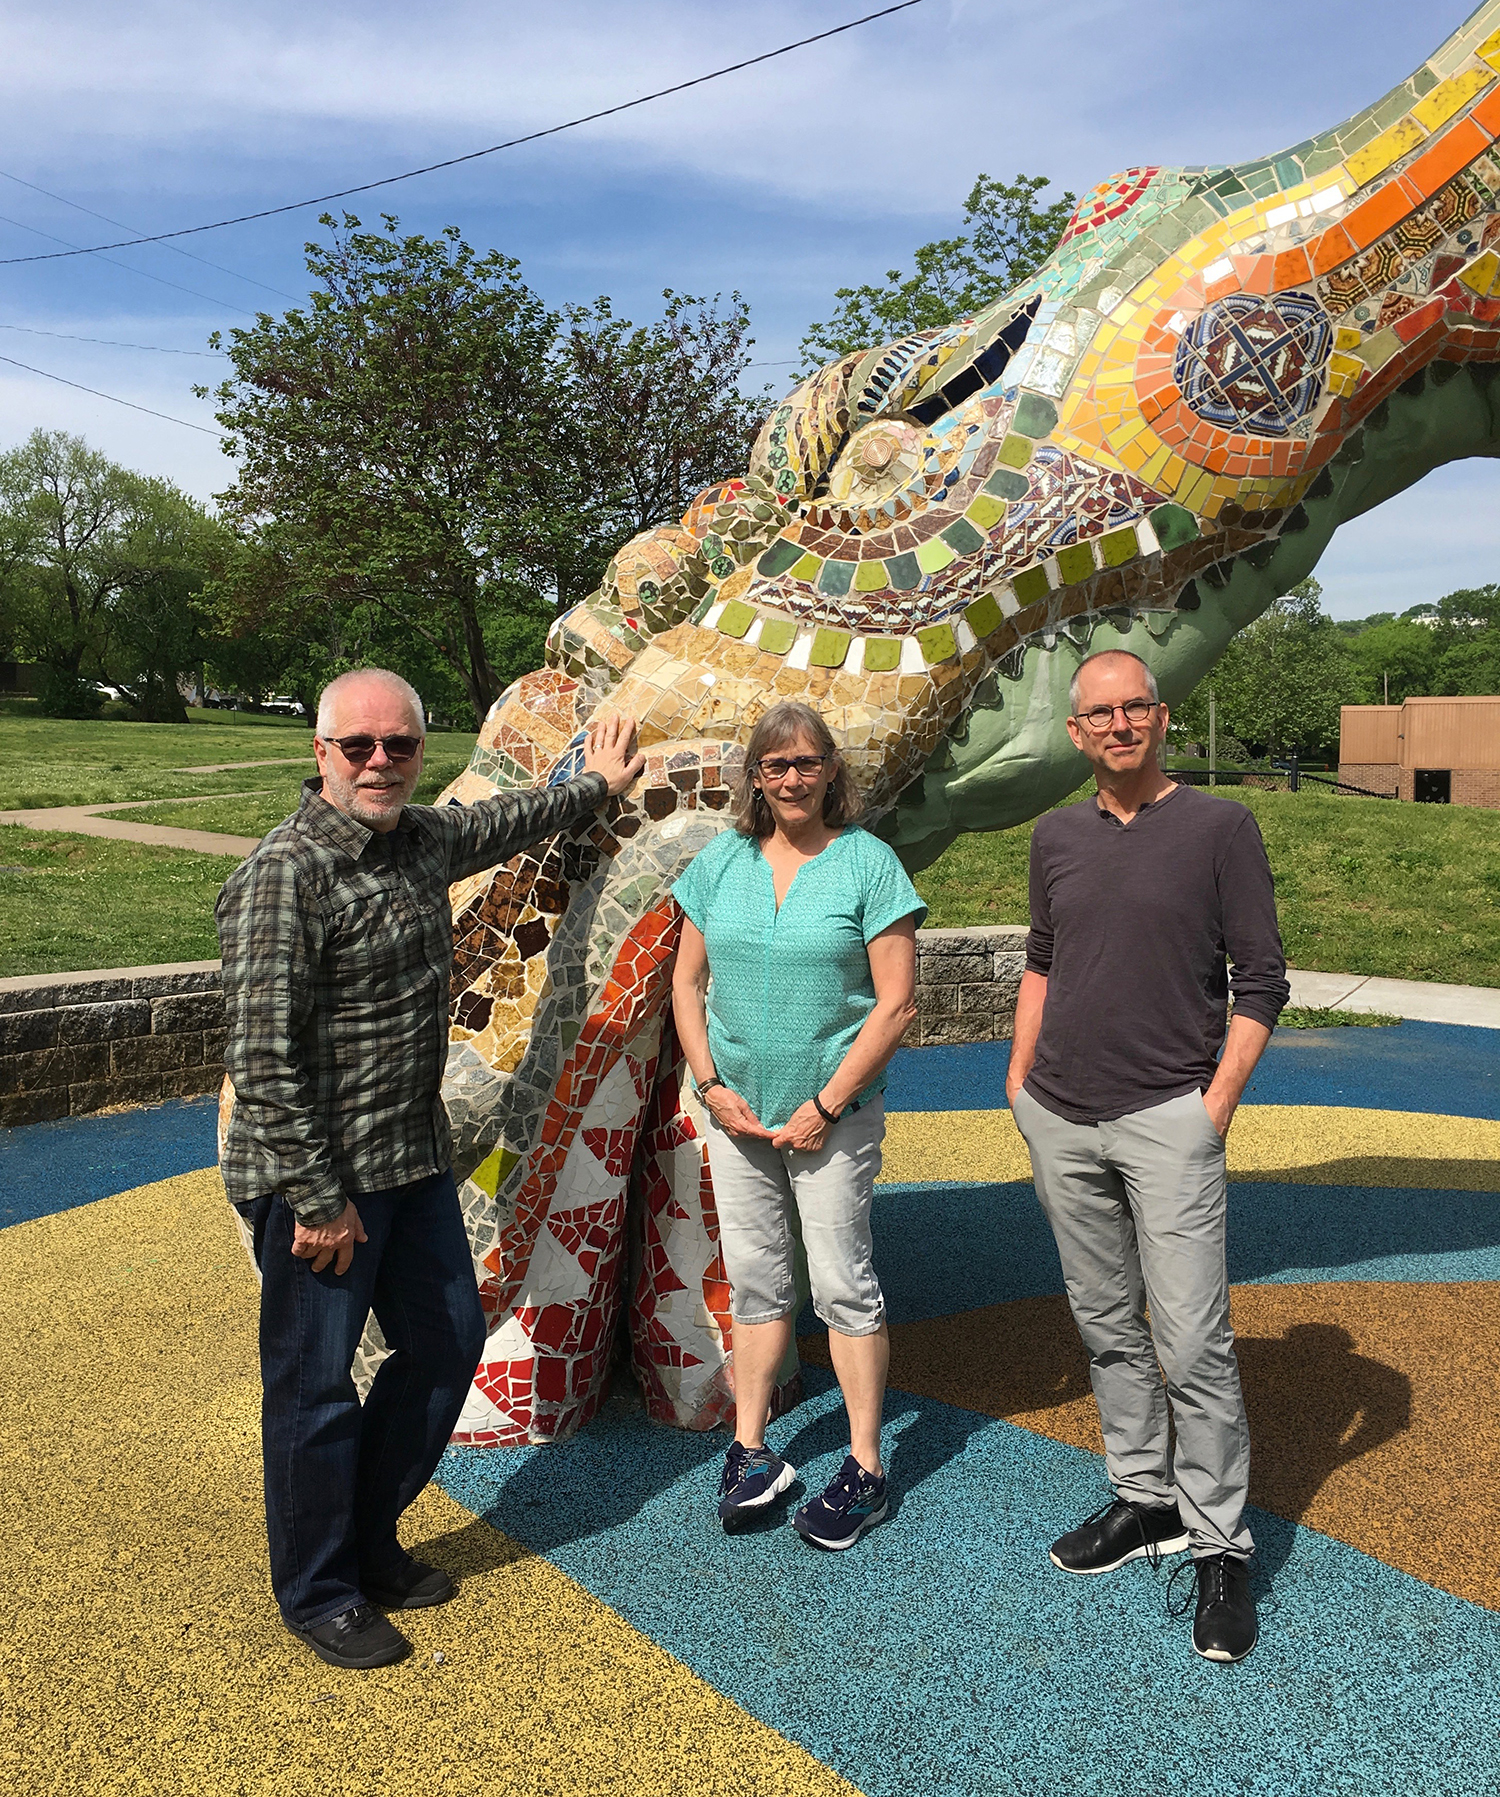 Scott, Lynn and Todd pose in front of a fun mosaic sculpture in a playground. We were lucky to bump into the woman who originally spearheaded this community project in the '80s. It's been restored since then, and is a neighborhood treasure.